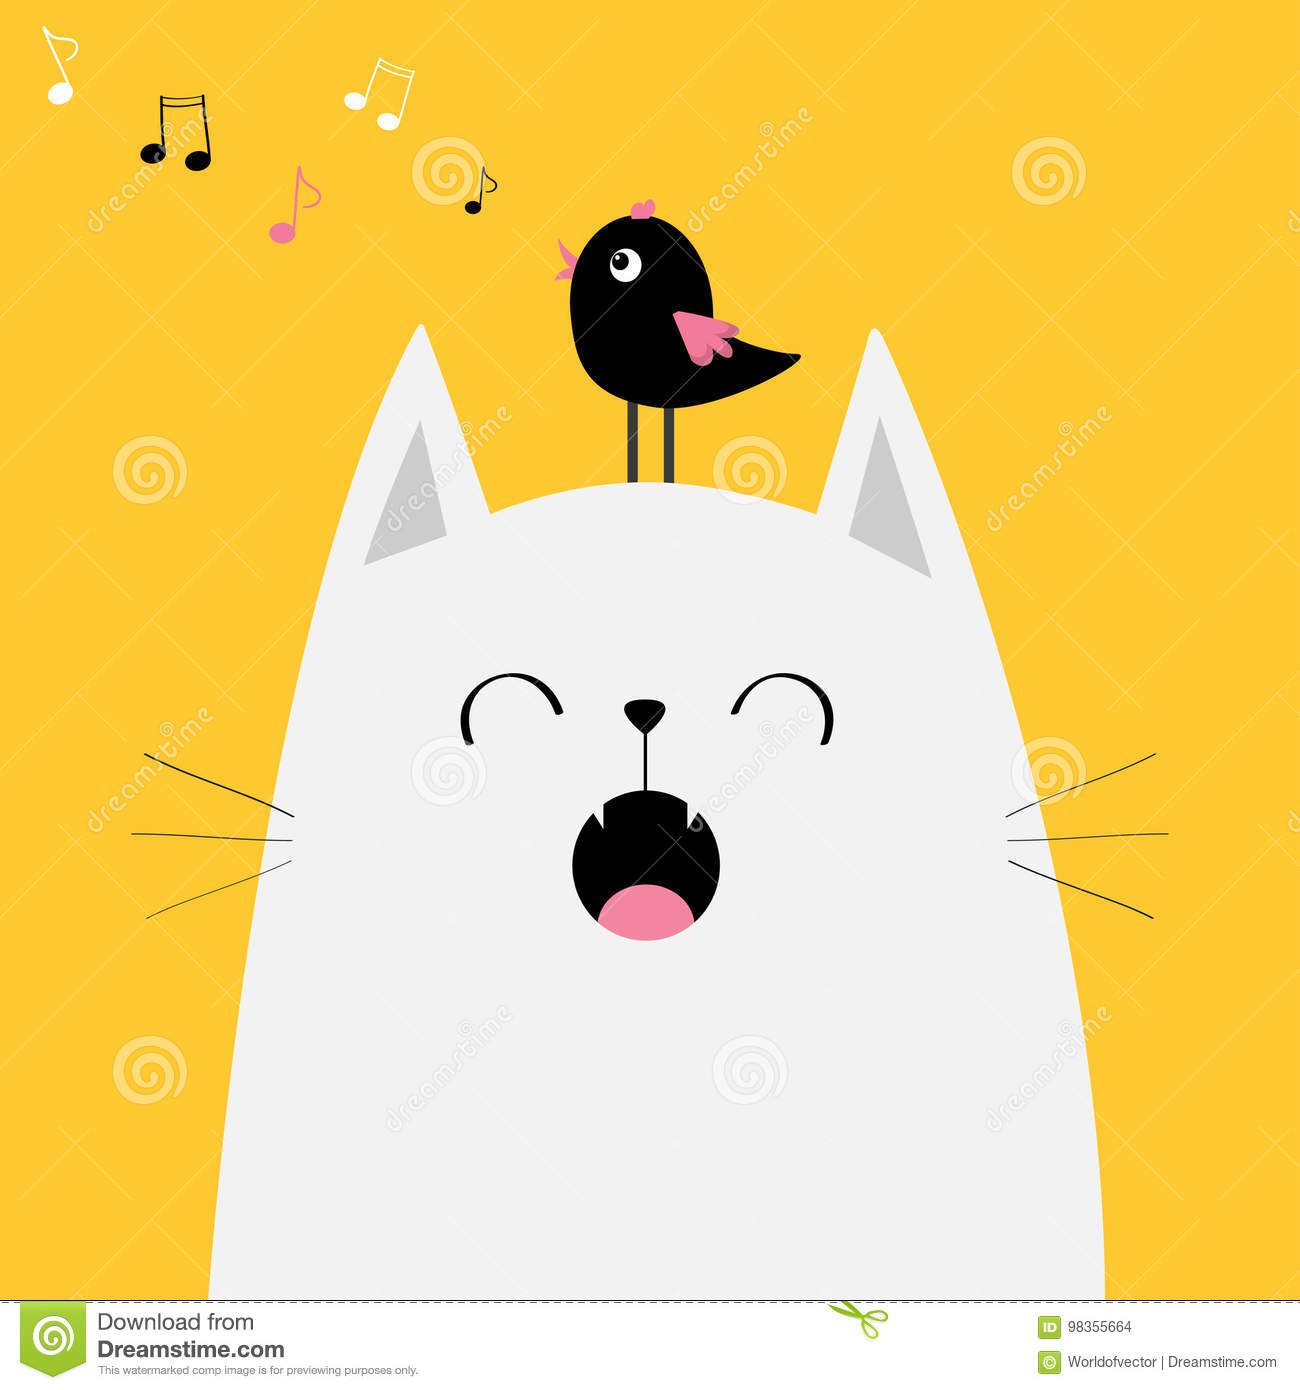 White Cat Face Silhouette Bird On Head Meowing Singing Song Music Note Flying